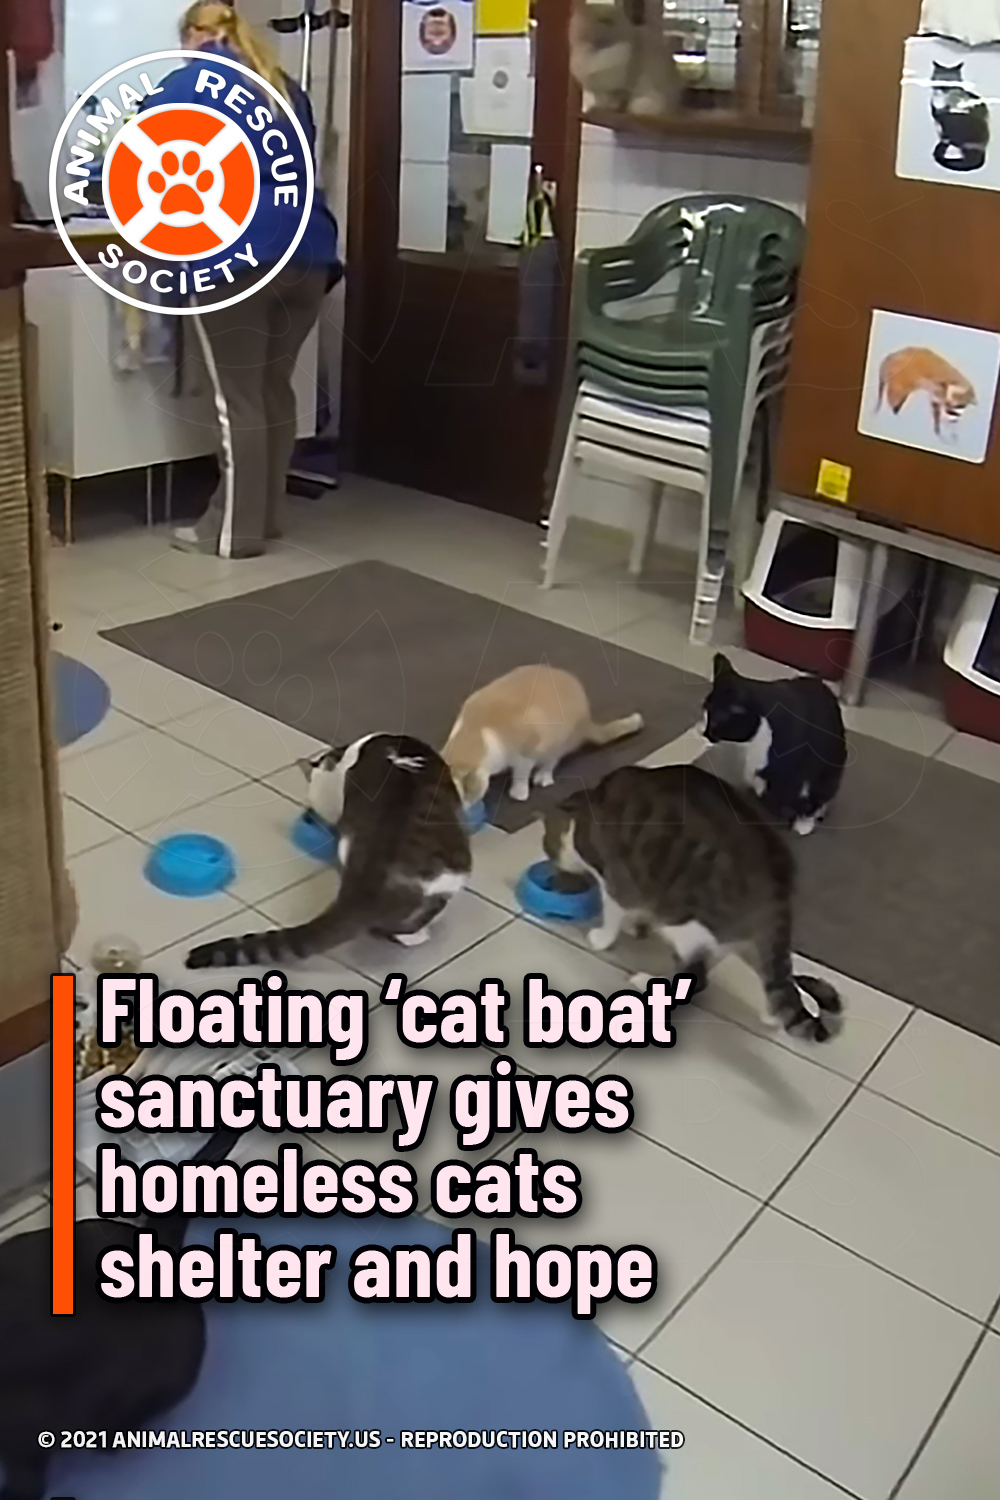 Floating 'cat boat' sanctuary gives homeless cats shelter and hope